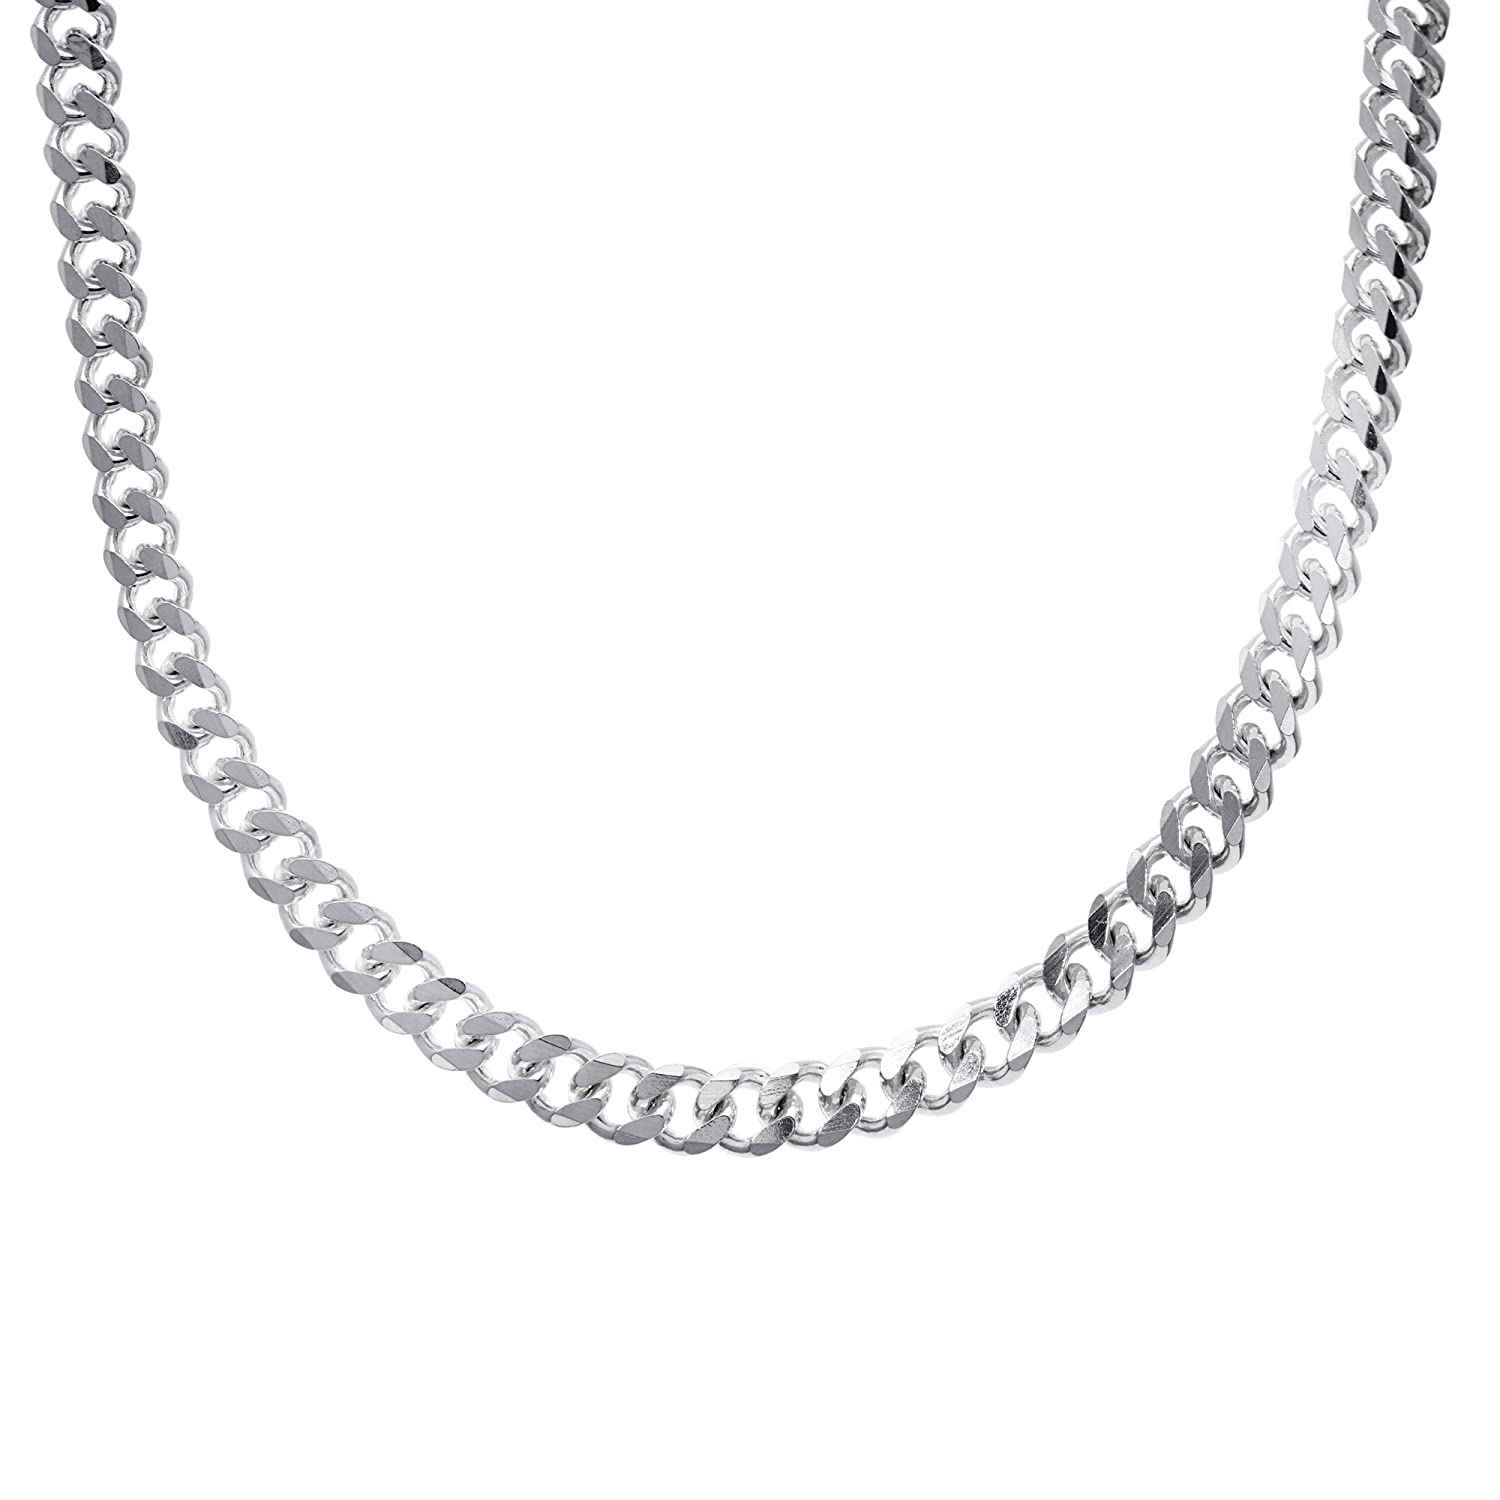 93e8ad8c82 Silverly Men's Women's .925 Sterling Silver Chunky Curb Chain 10 mm Lobster  Clasp Necklace, 46-61 cm